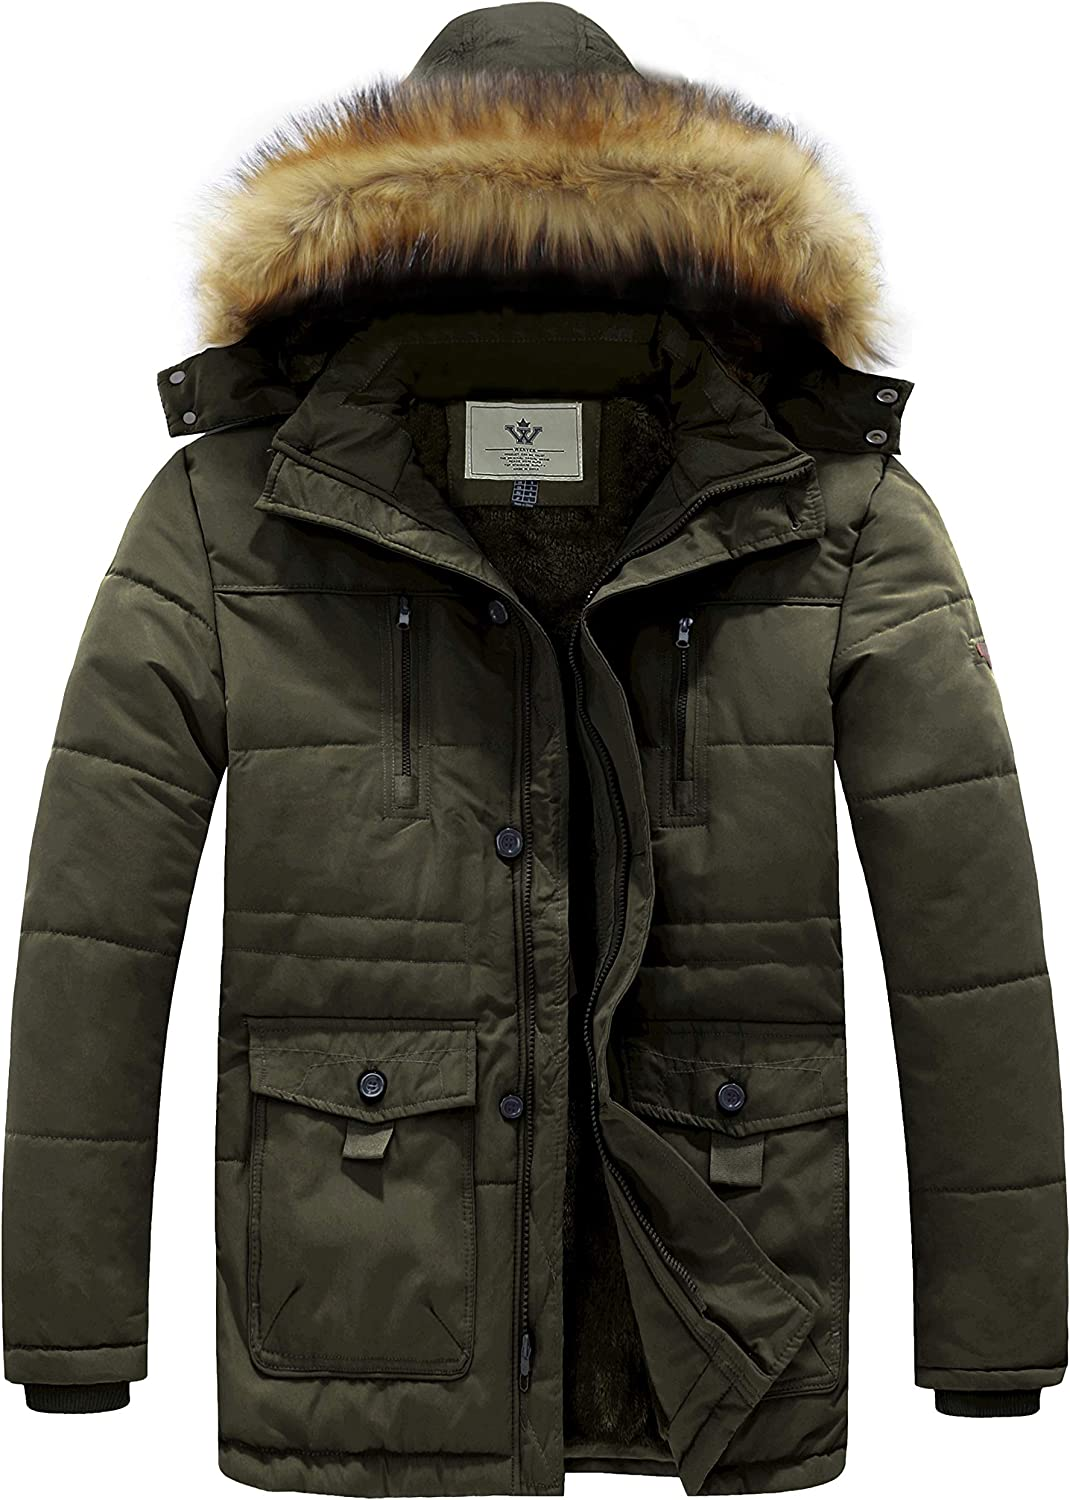 WenVen Men's Hooded Warm Special sale item Winter Jacket At the price of surprise Coat Parka